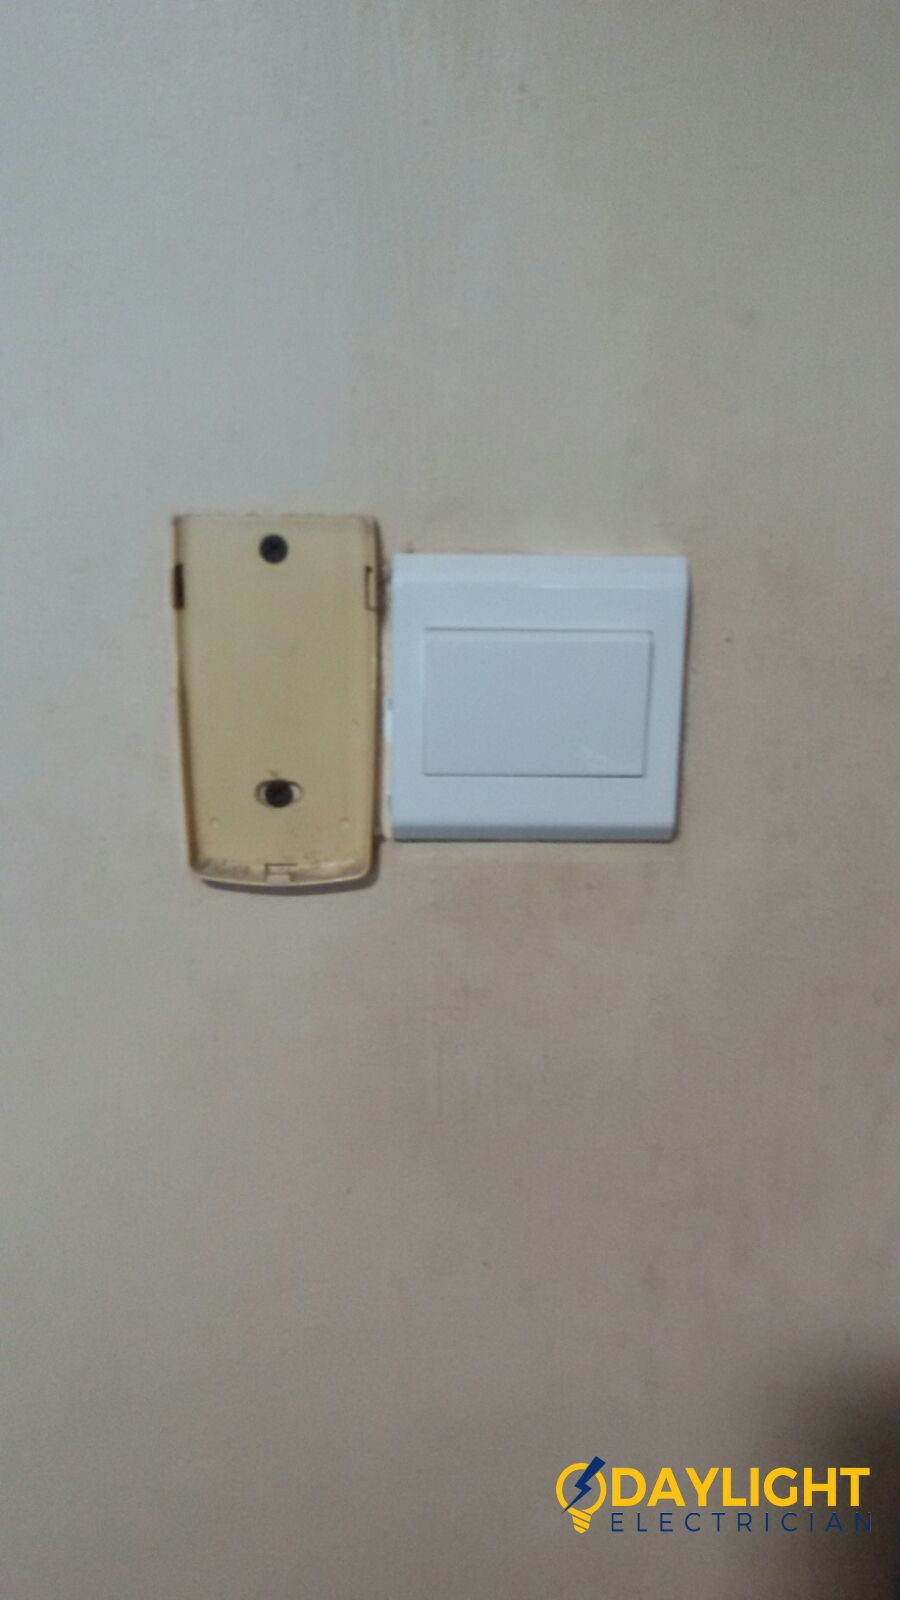 replace-light-switch-electrician-singapore-bedok-hdb-4